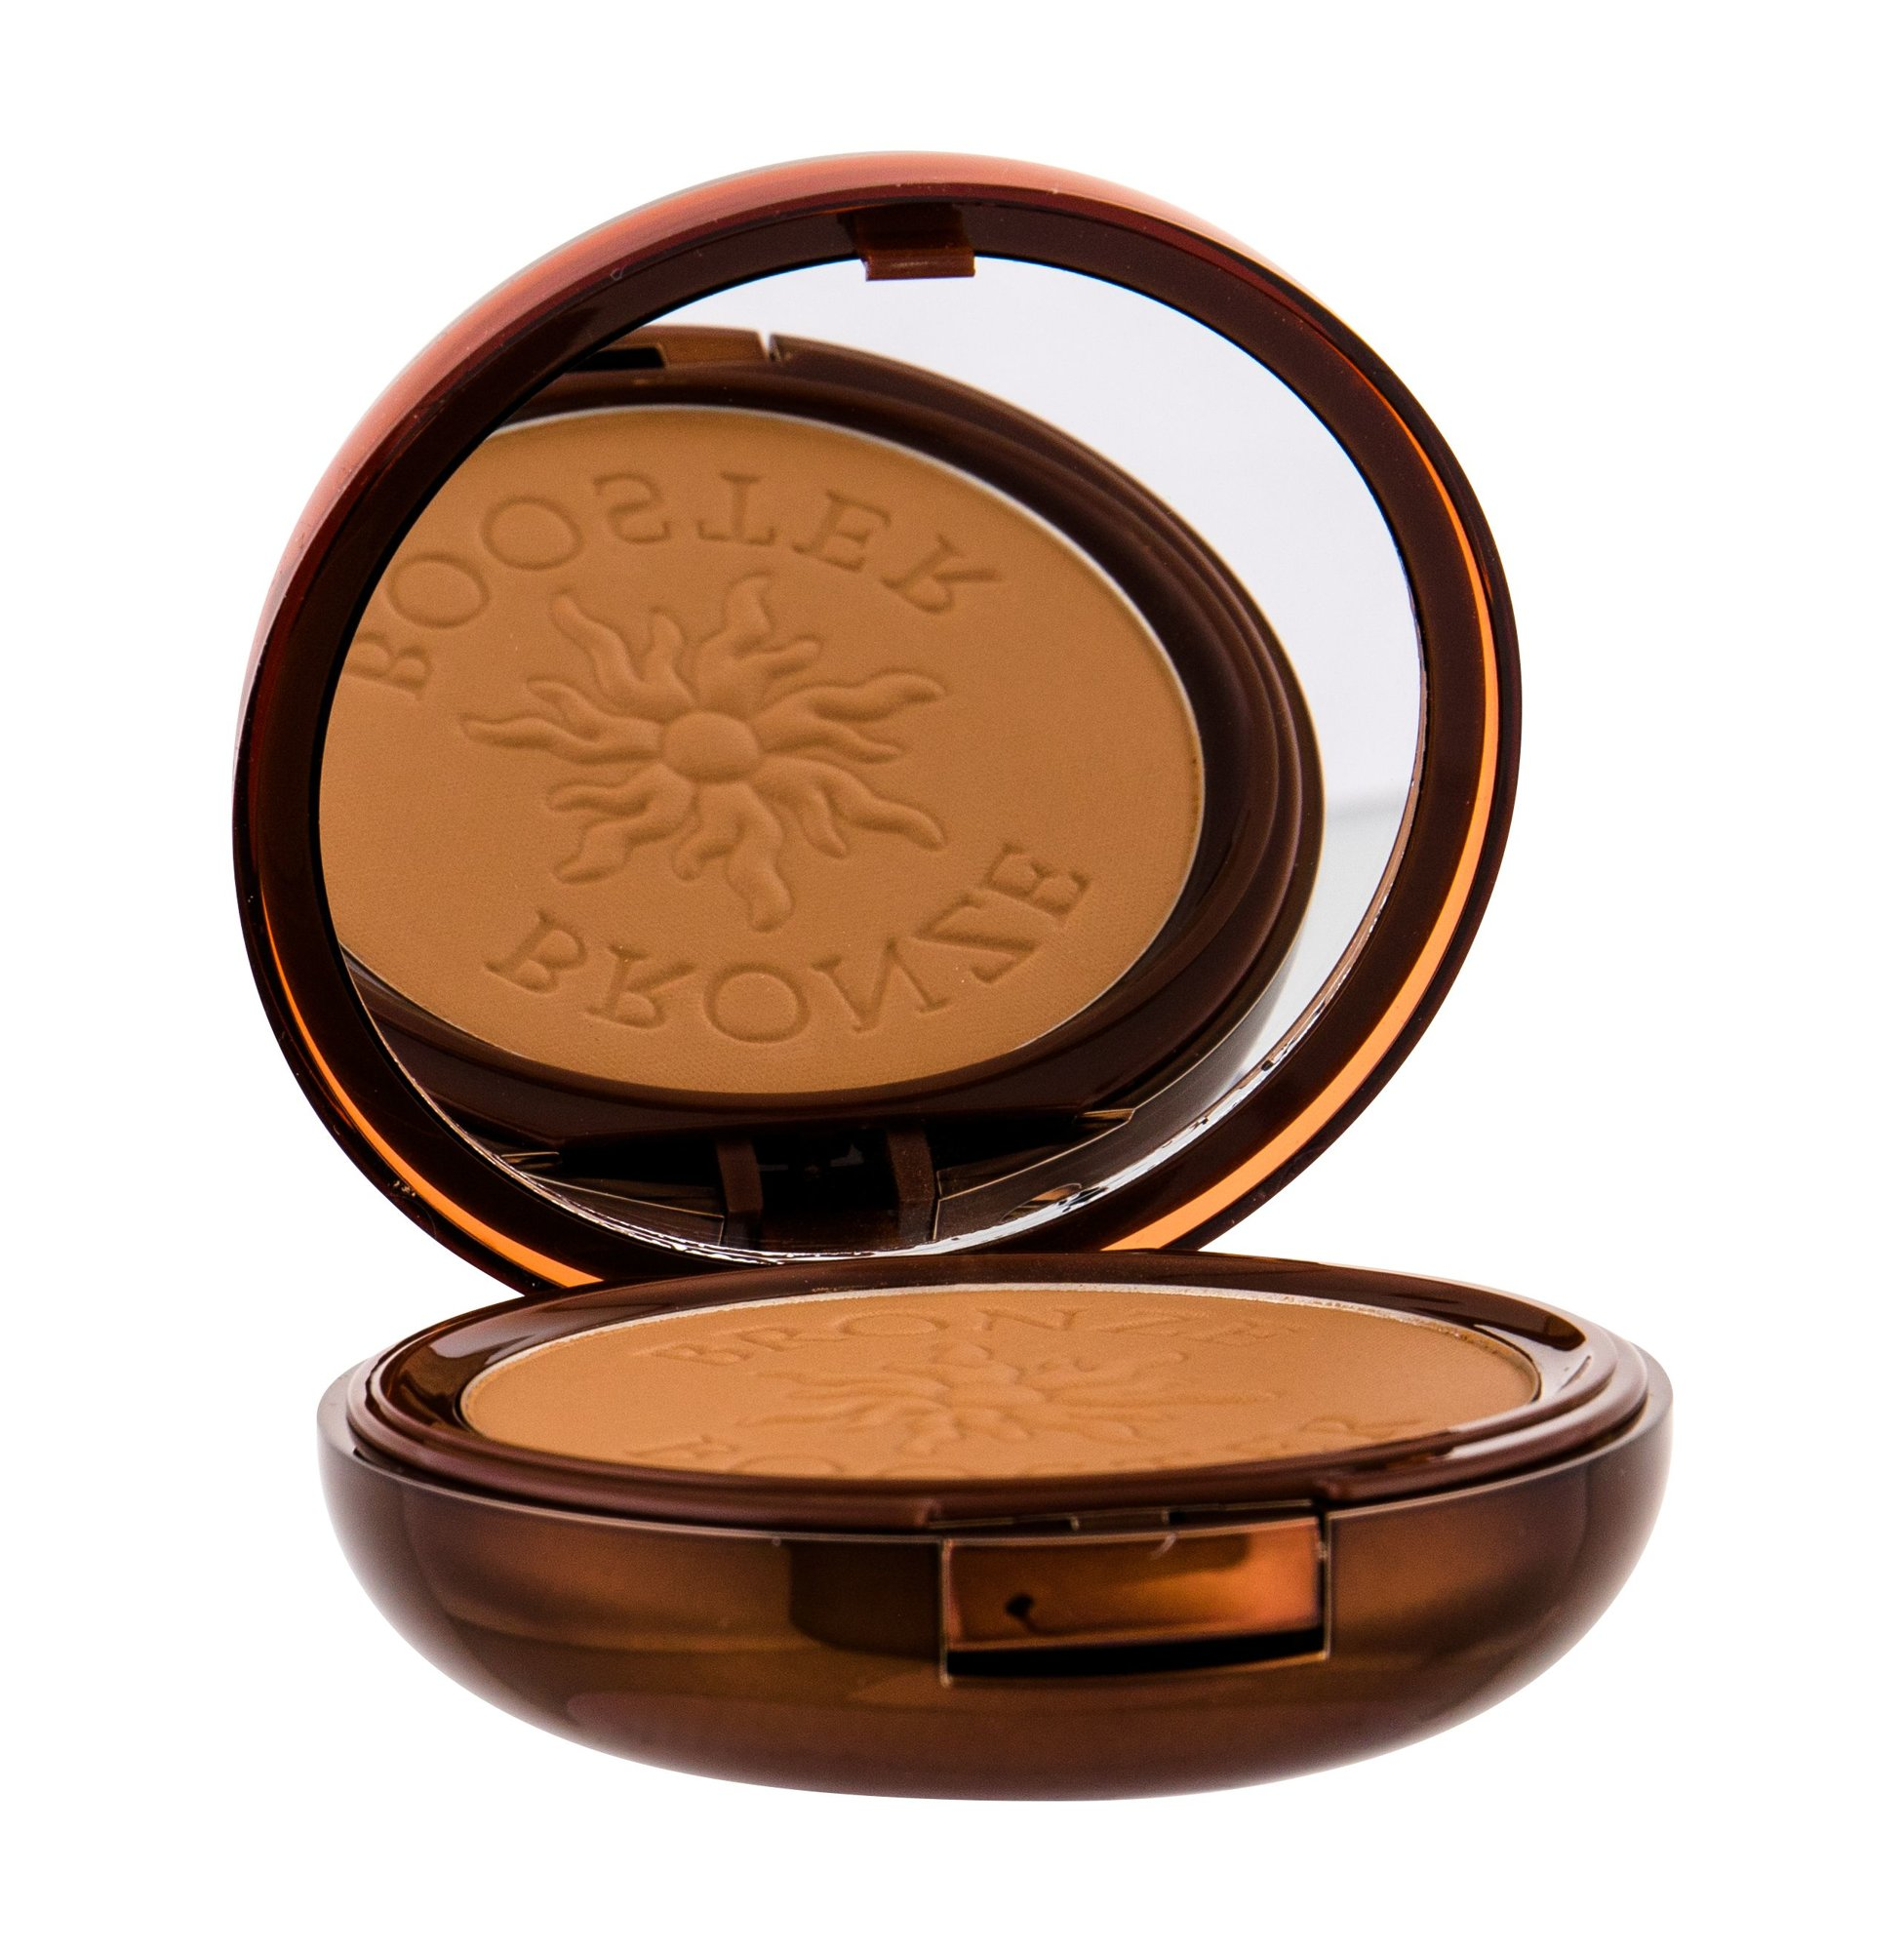 Physicians Formula Bronze Booster Bronzer 9ml Medium/Dark